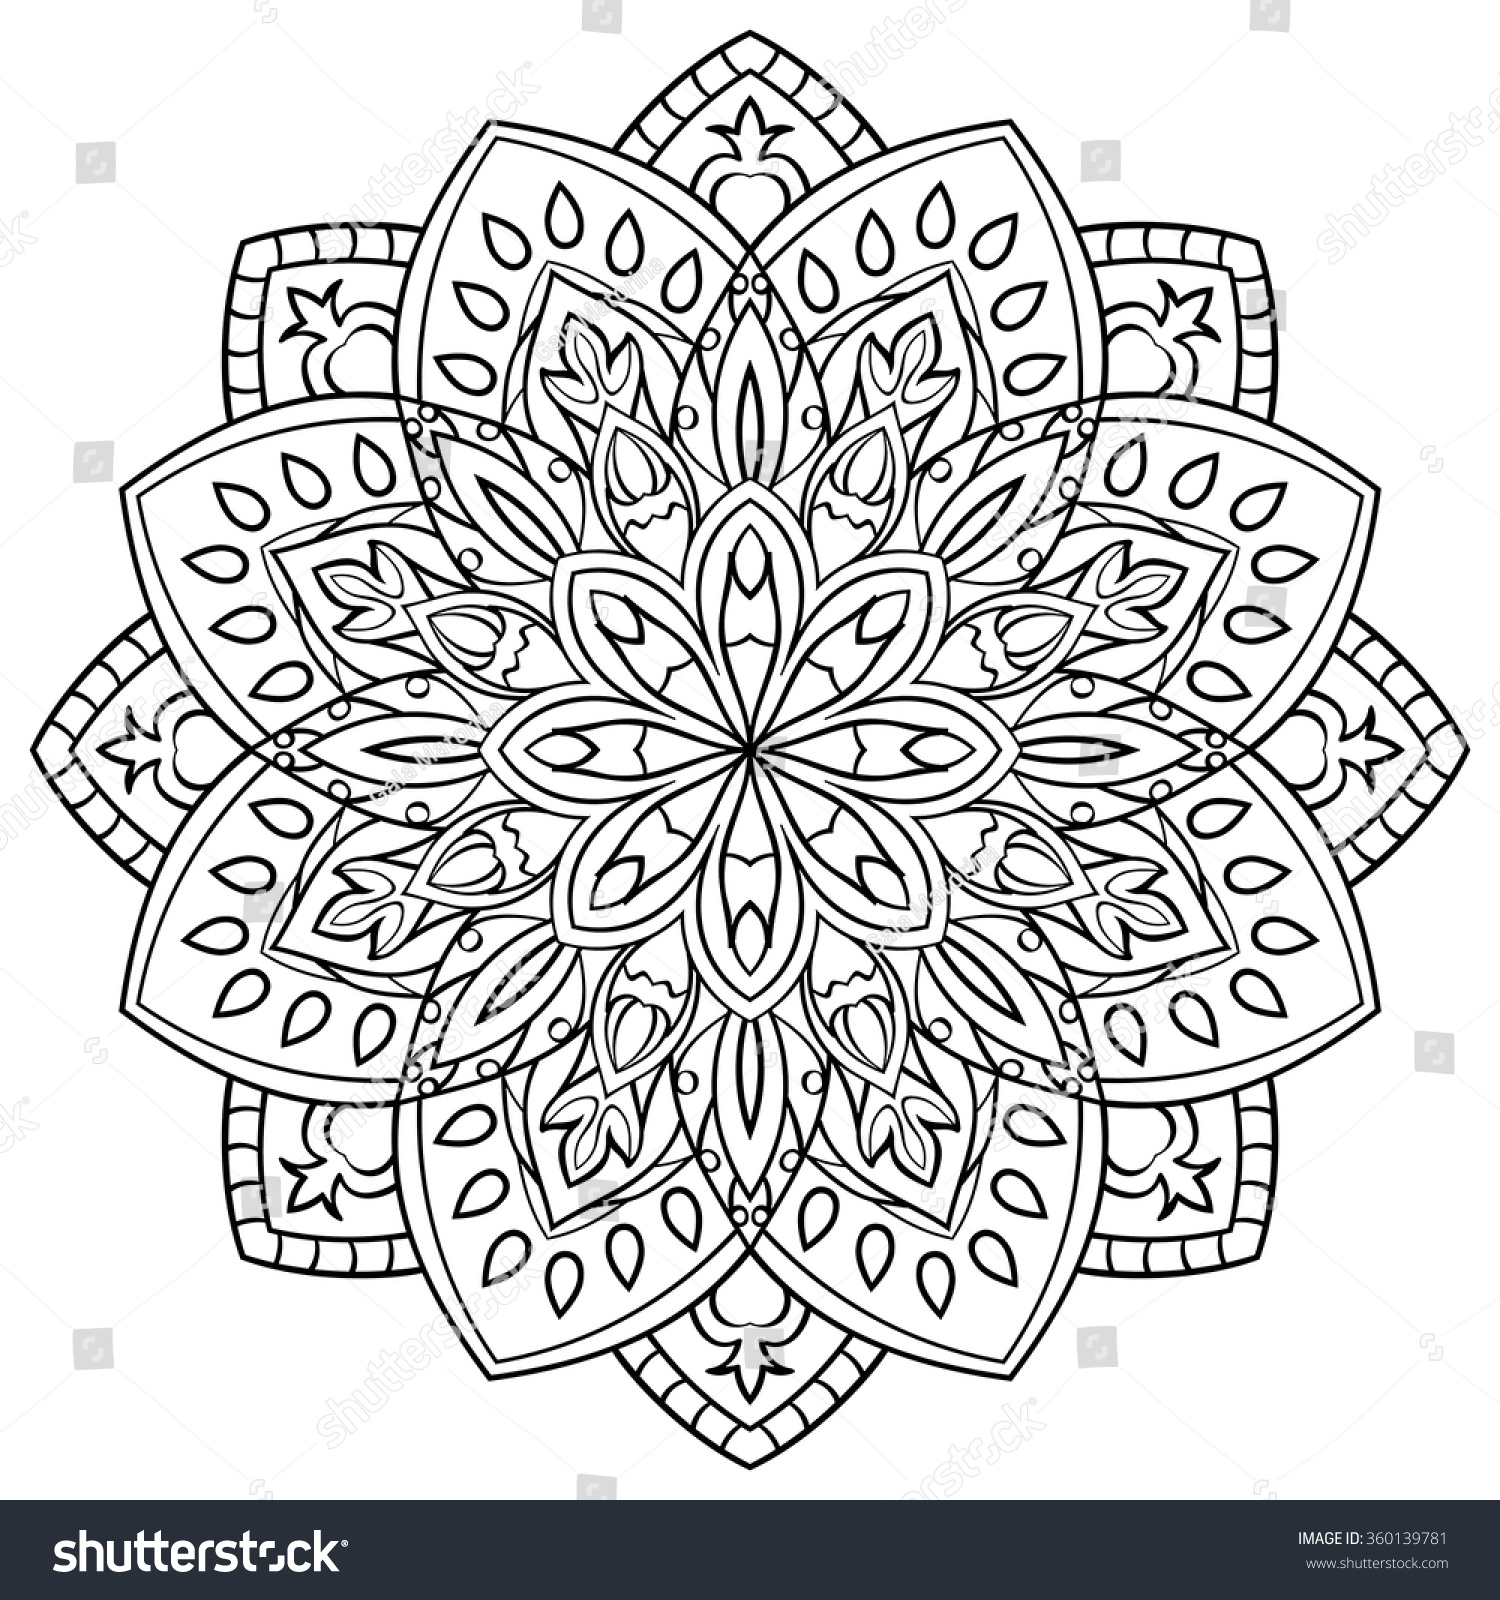 Simple Contour Mandala On White Background Stock Vector ... | 1500 x 1600 jpeg 723kB